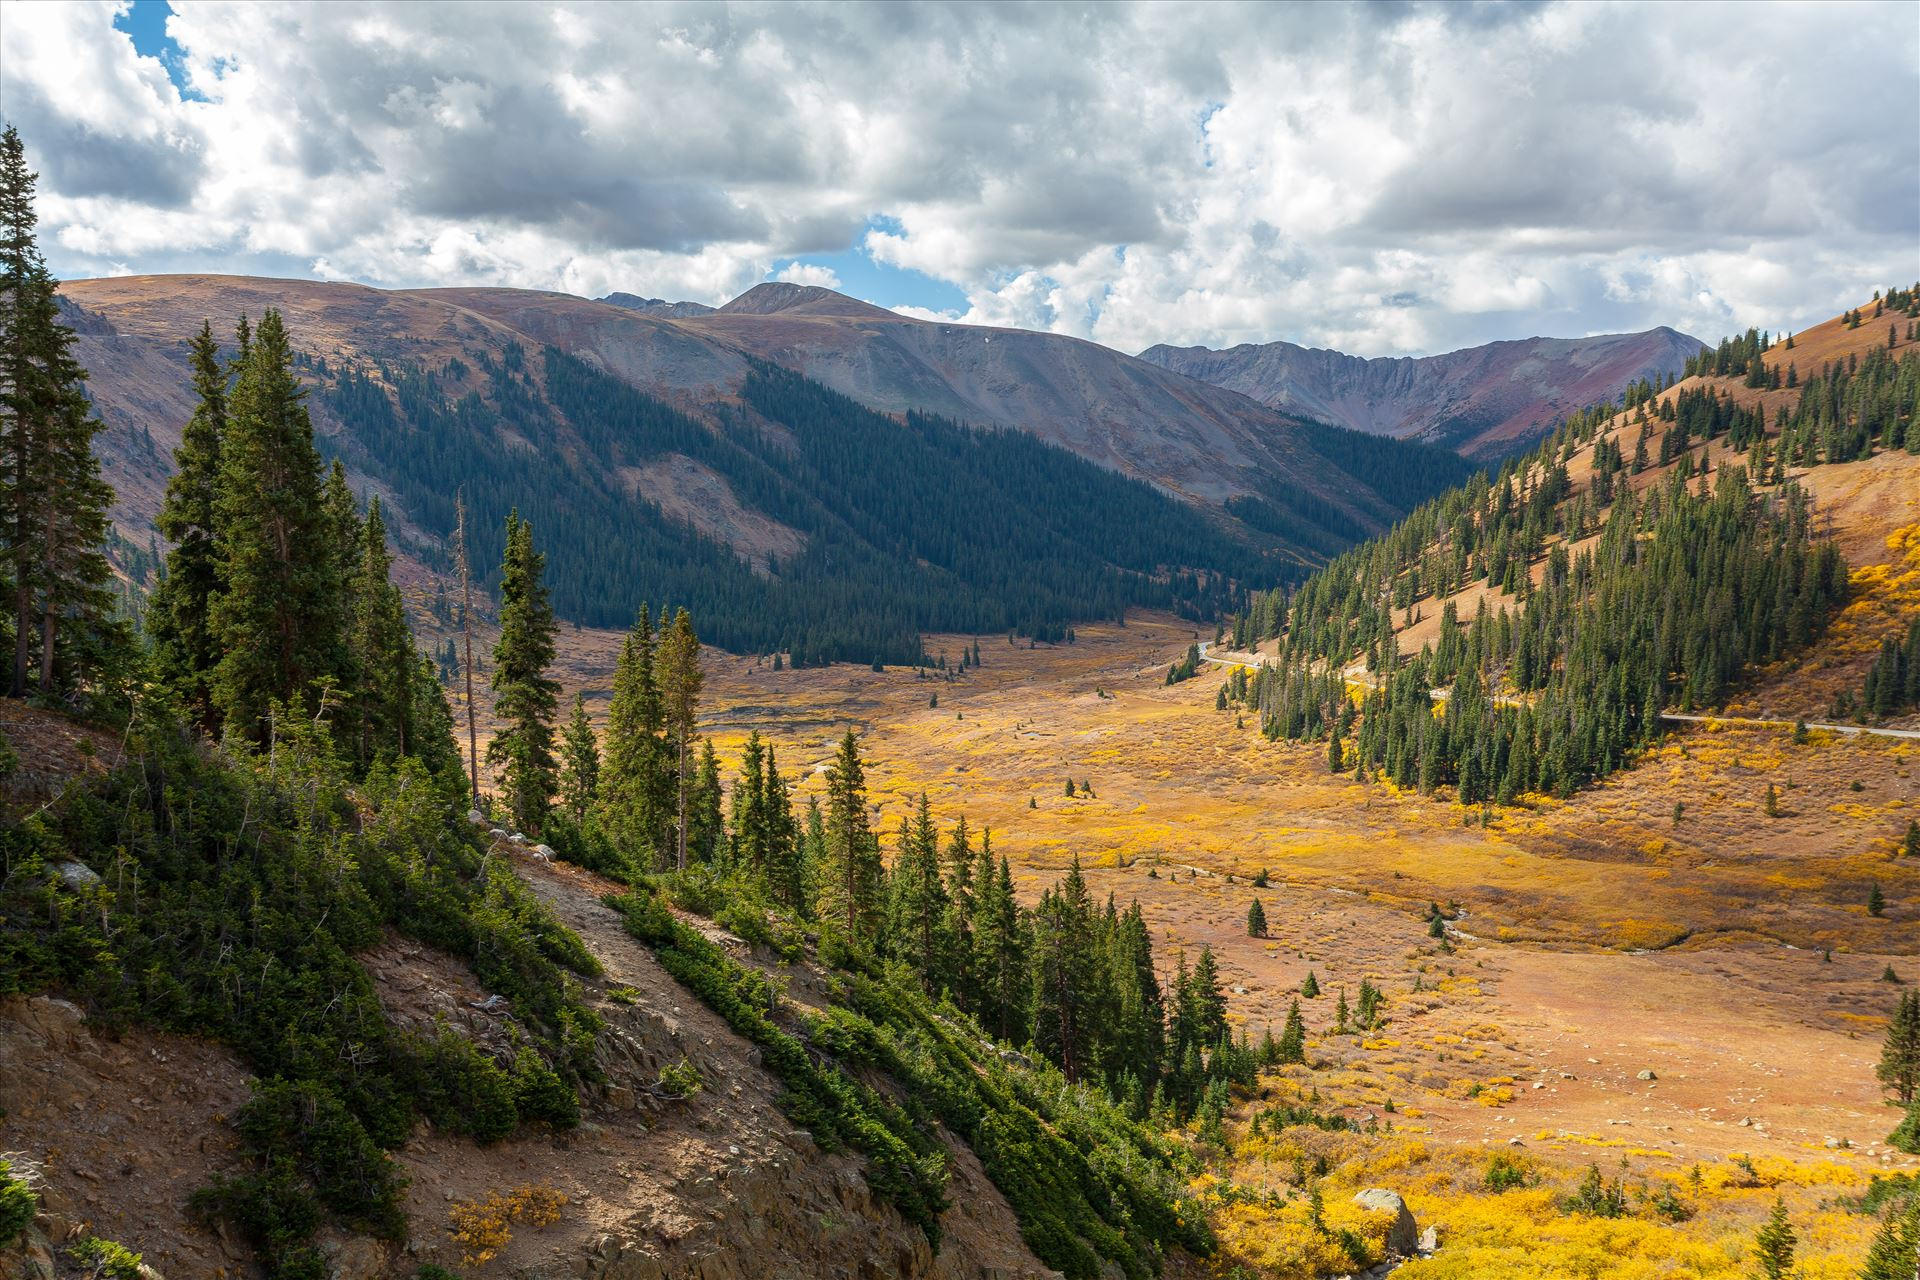 Independence Valley in Fall - From Independence Pass, highway 82, Independence Valley is an amazing sight to see any time of year. by D Scott Smith